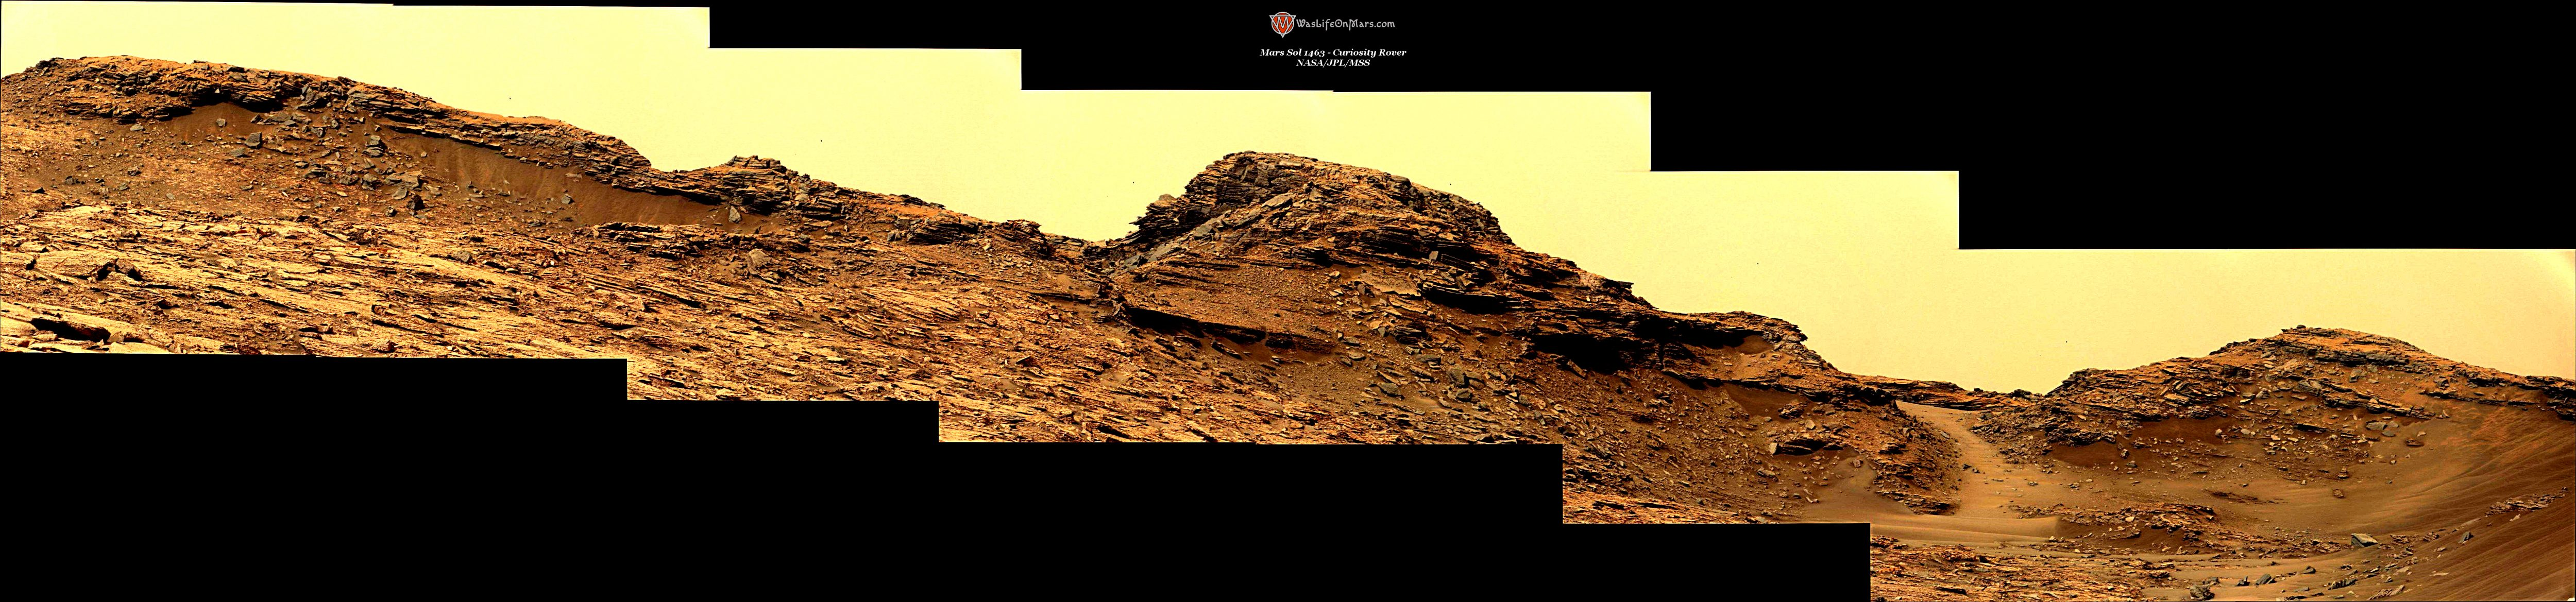 panoramic-curiosity-rover-view-1e1-sol-1463-was-life-on-mars